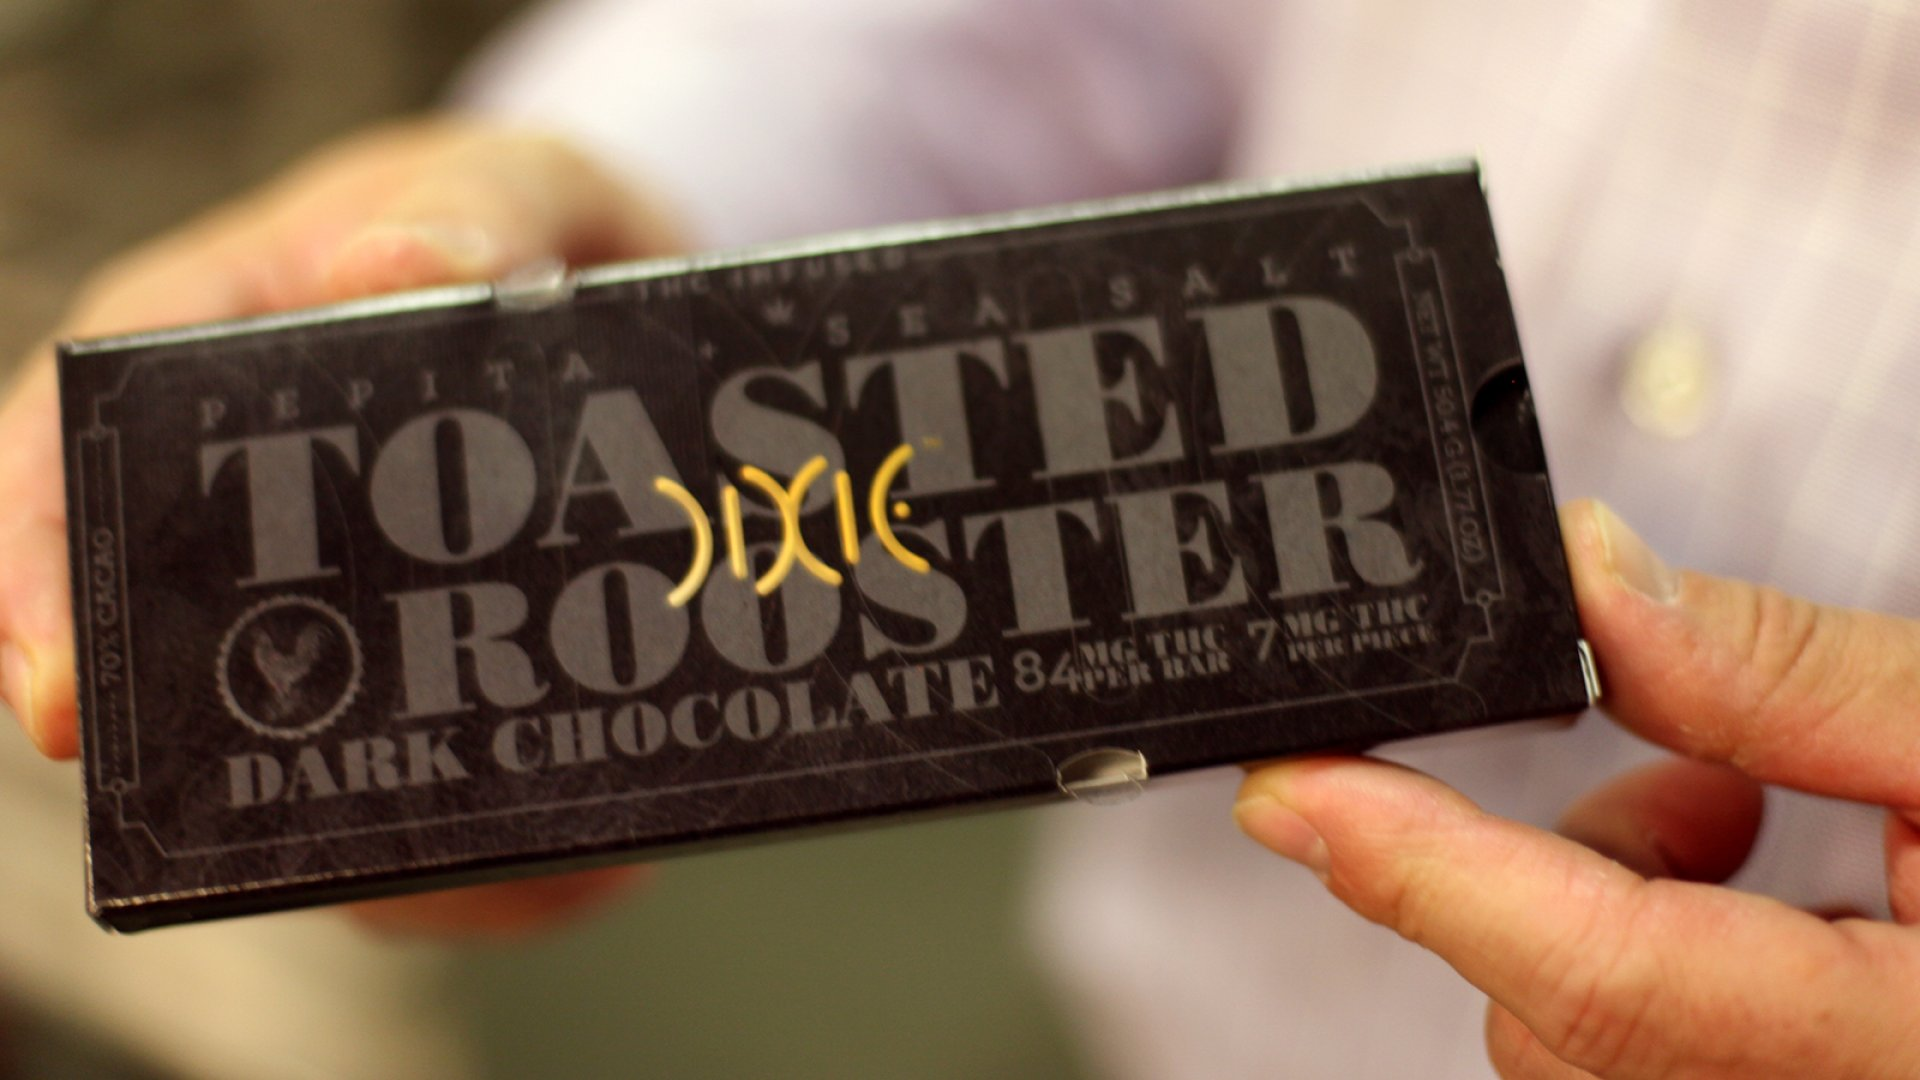 Dixie Elixirs's newest product, called the Toasted Rooster, is a gourmet chocolate bar with 84 mg of THC oil.